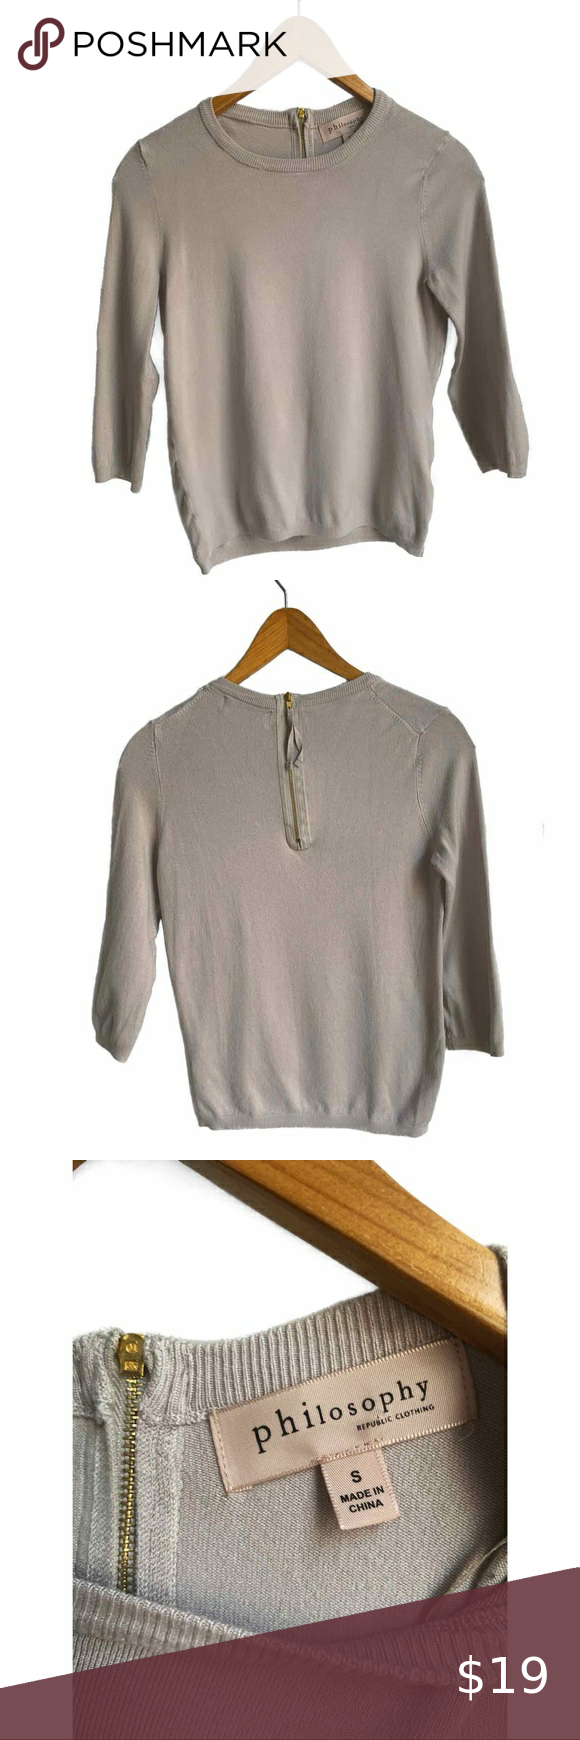 Philosophy Stone Taupe Crew Neck Sweater In 2020 Crew Neck Sweater Sweaters Clothes Design